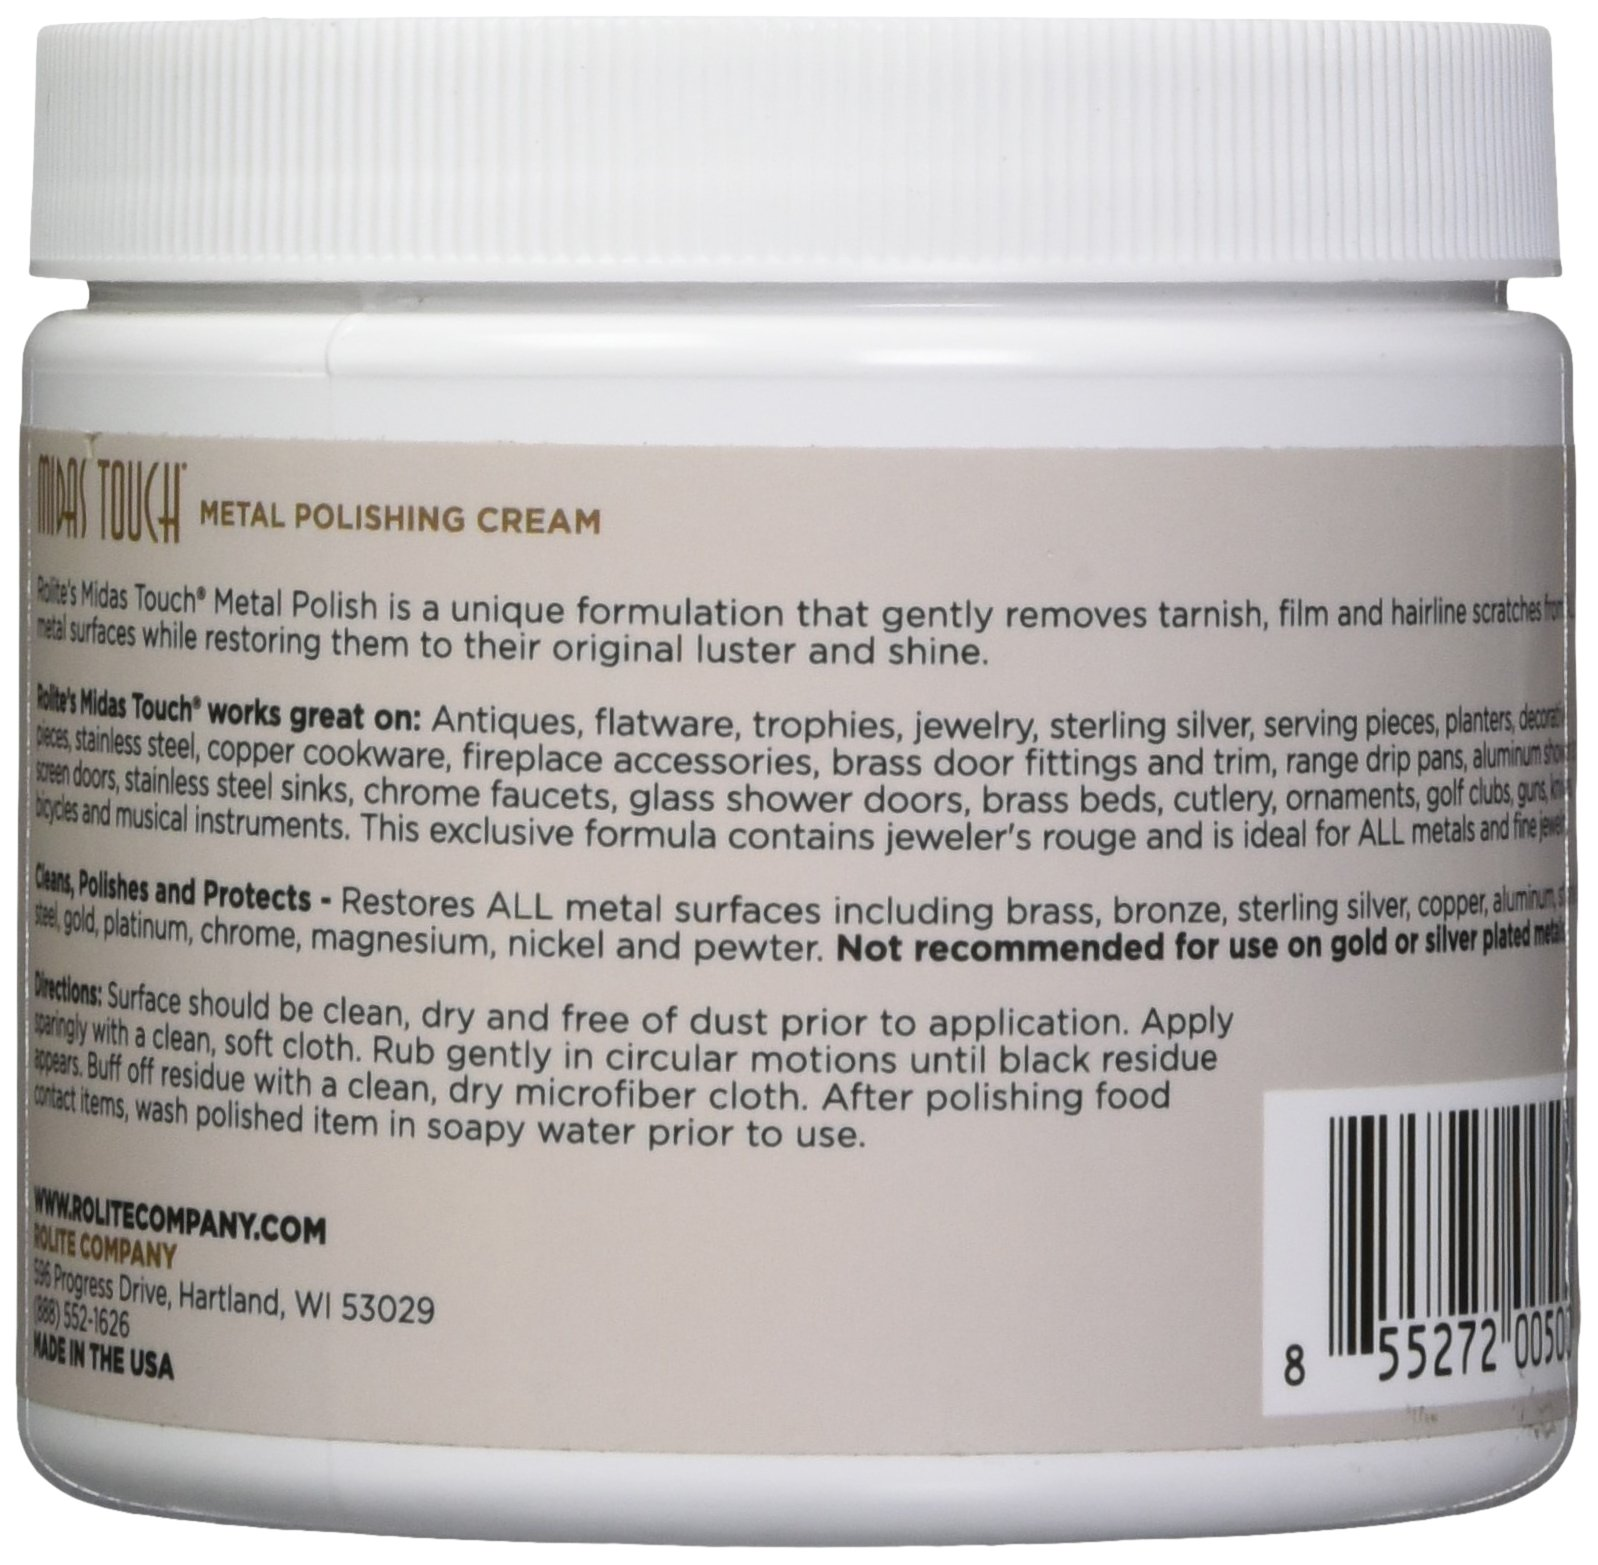 Rolite's Midas Touch Metal Polishing Cream - directions